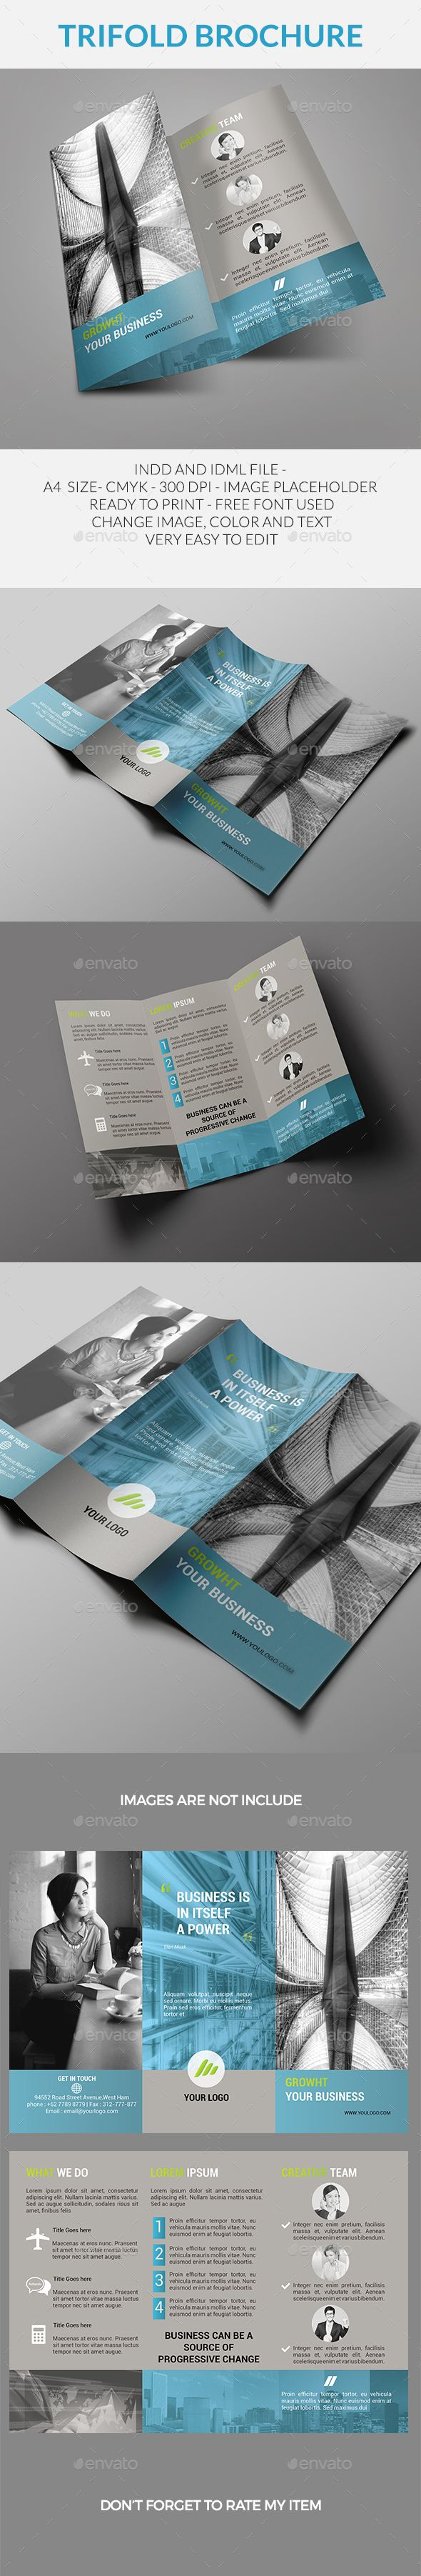 Trifold Brochure Template InDesign INDD. Download here: http://graphicriver.net/item/trifold-brochure/15426566?ref=ksioks